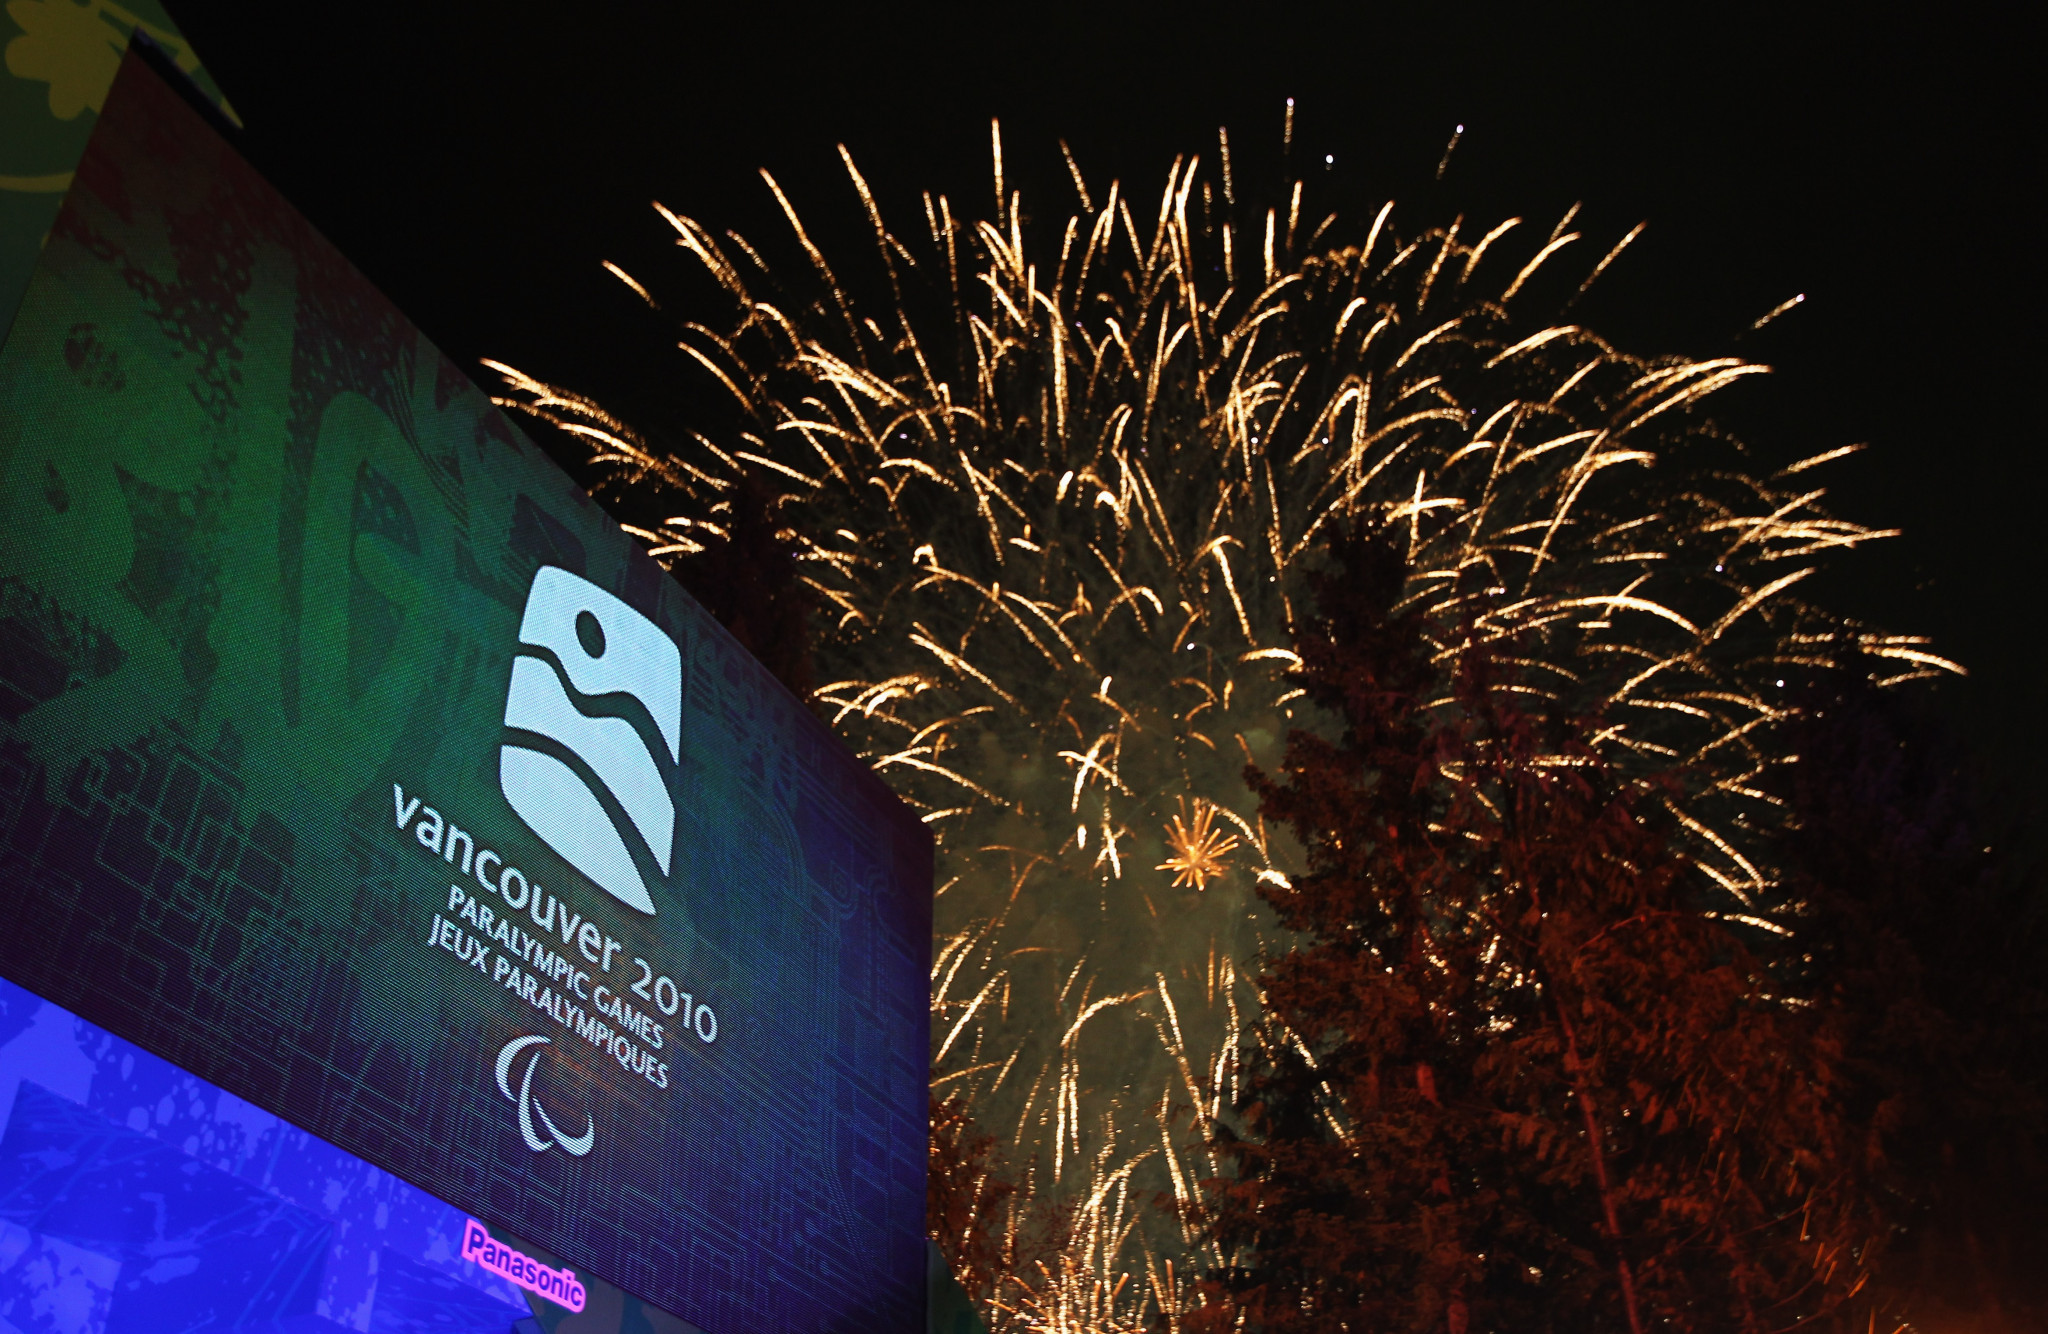 IPC re-analysis of Vancouver 2010 Winter Paralympics samples finds no adverse findings